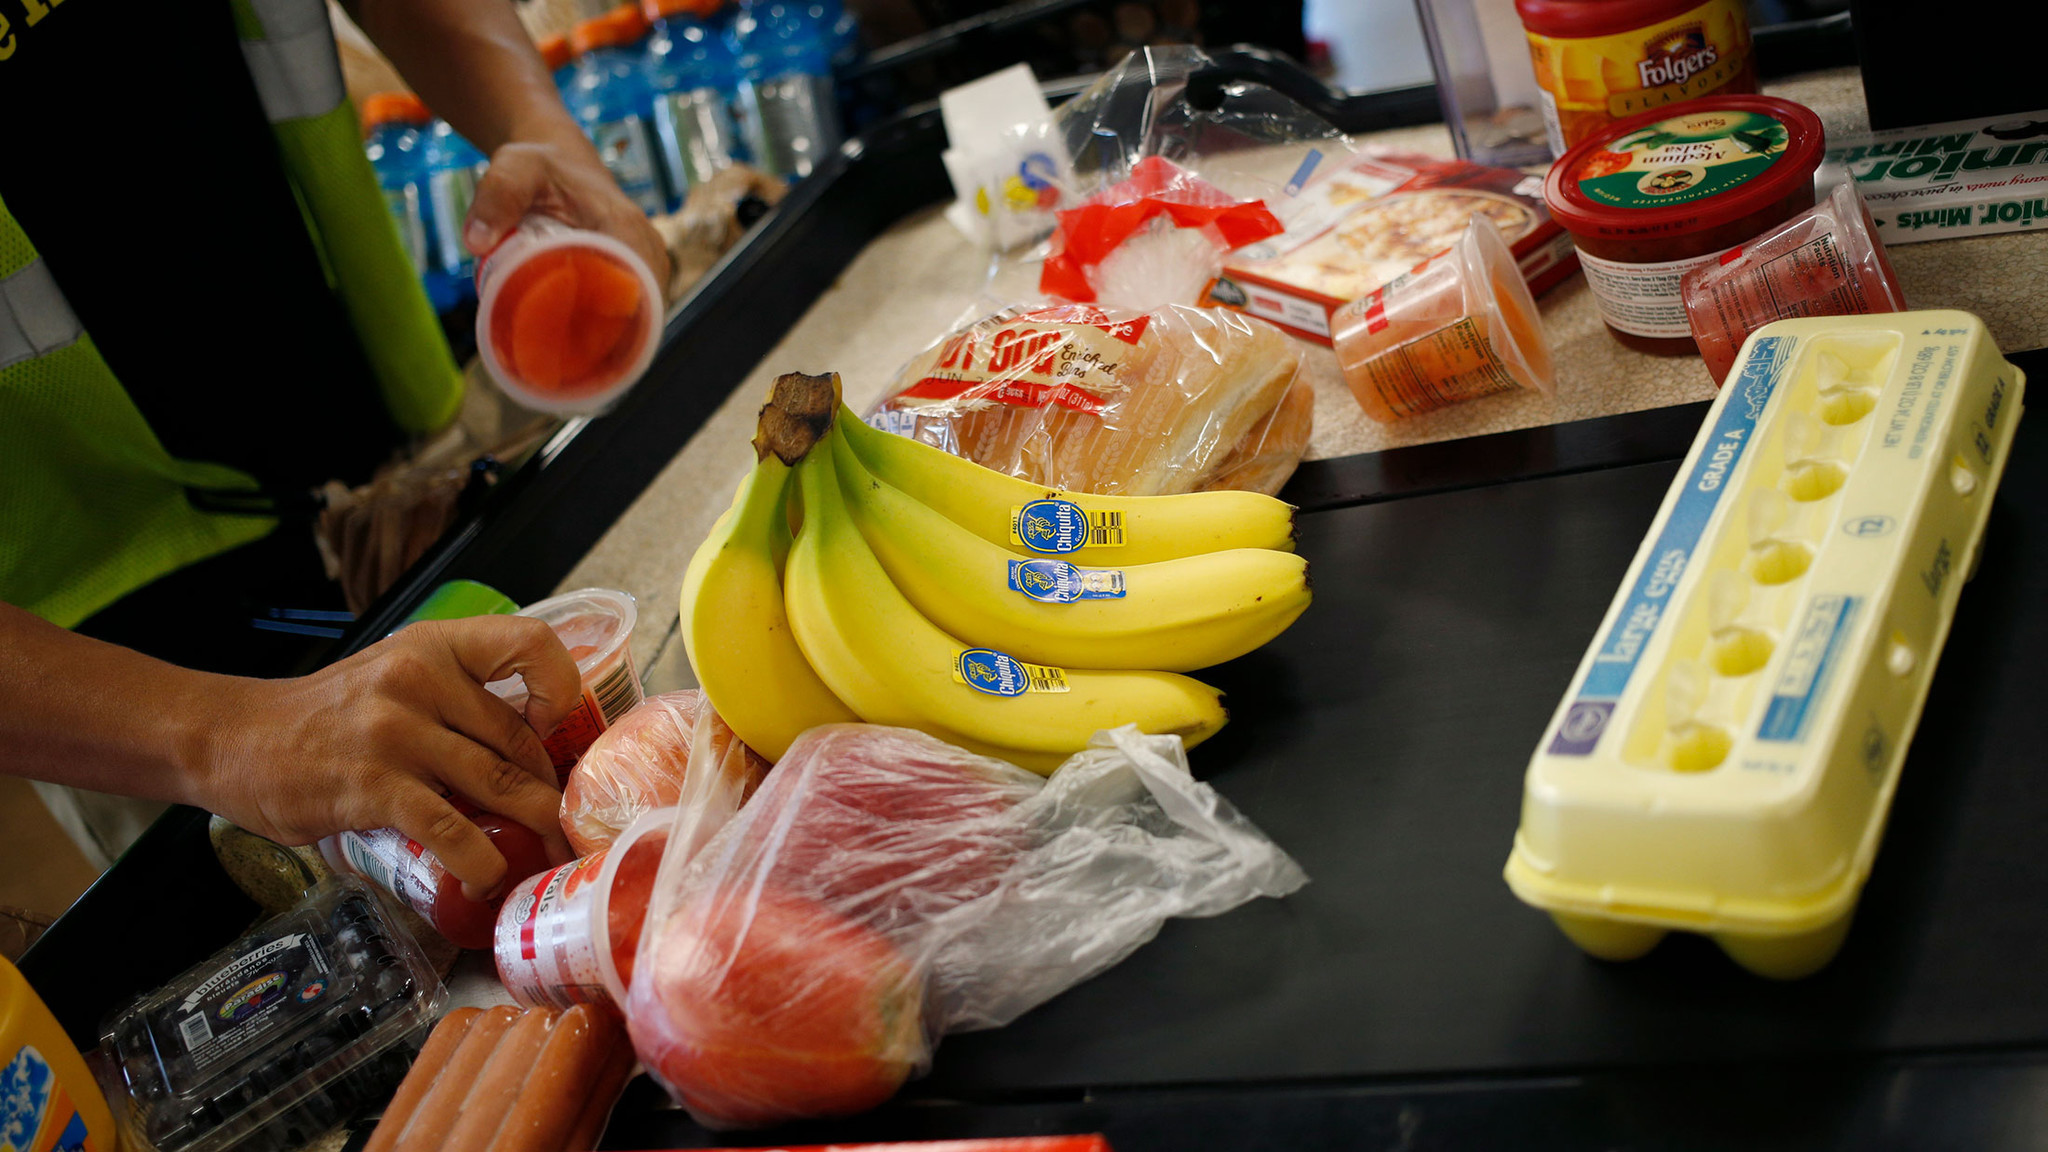 Republican Plan To Tighten Food Stamp Work Requirements Advances Despite Opposition